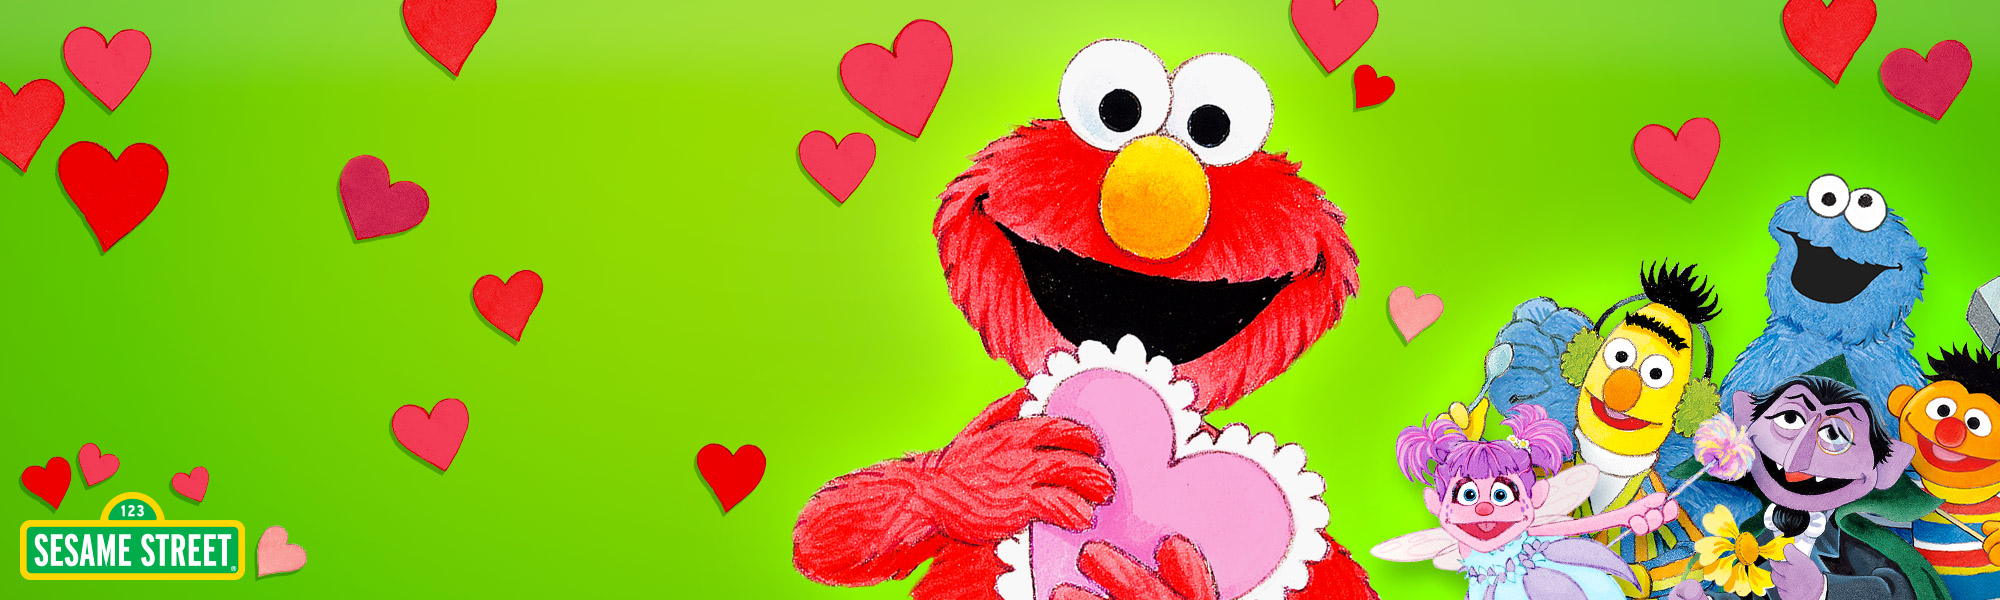 Elmo Loves You! title image starring Elmo, Cookie Monster, Abby, The Count, Bert and Ernie.